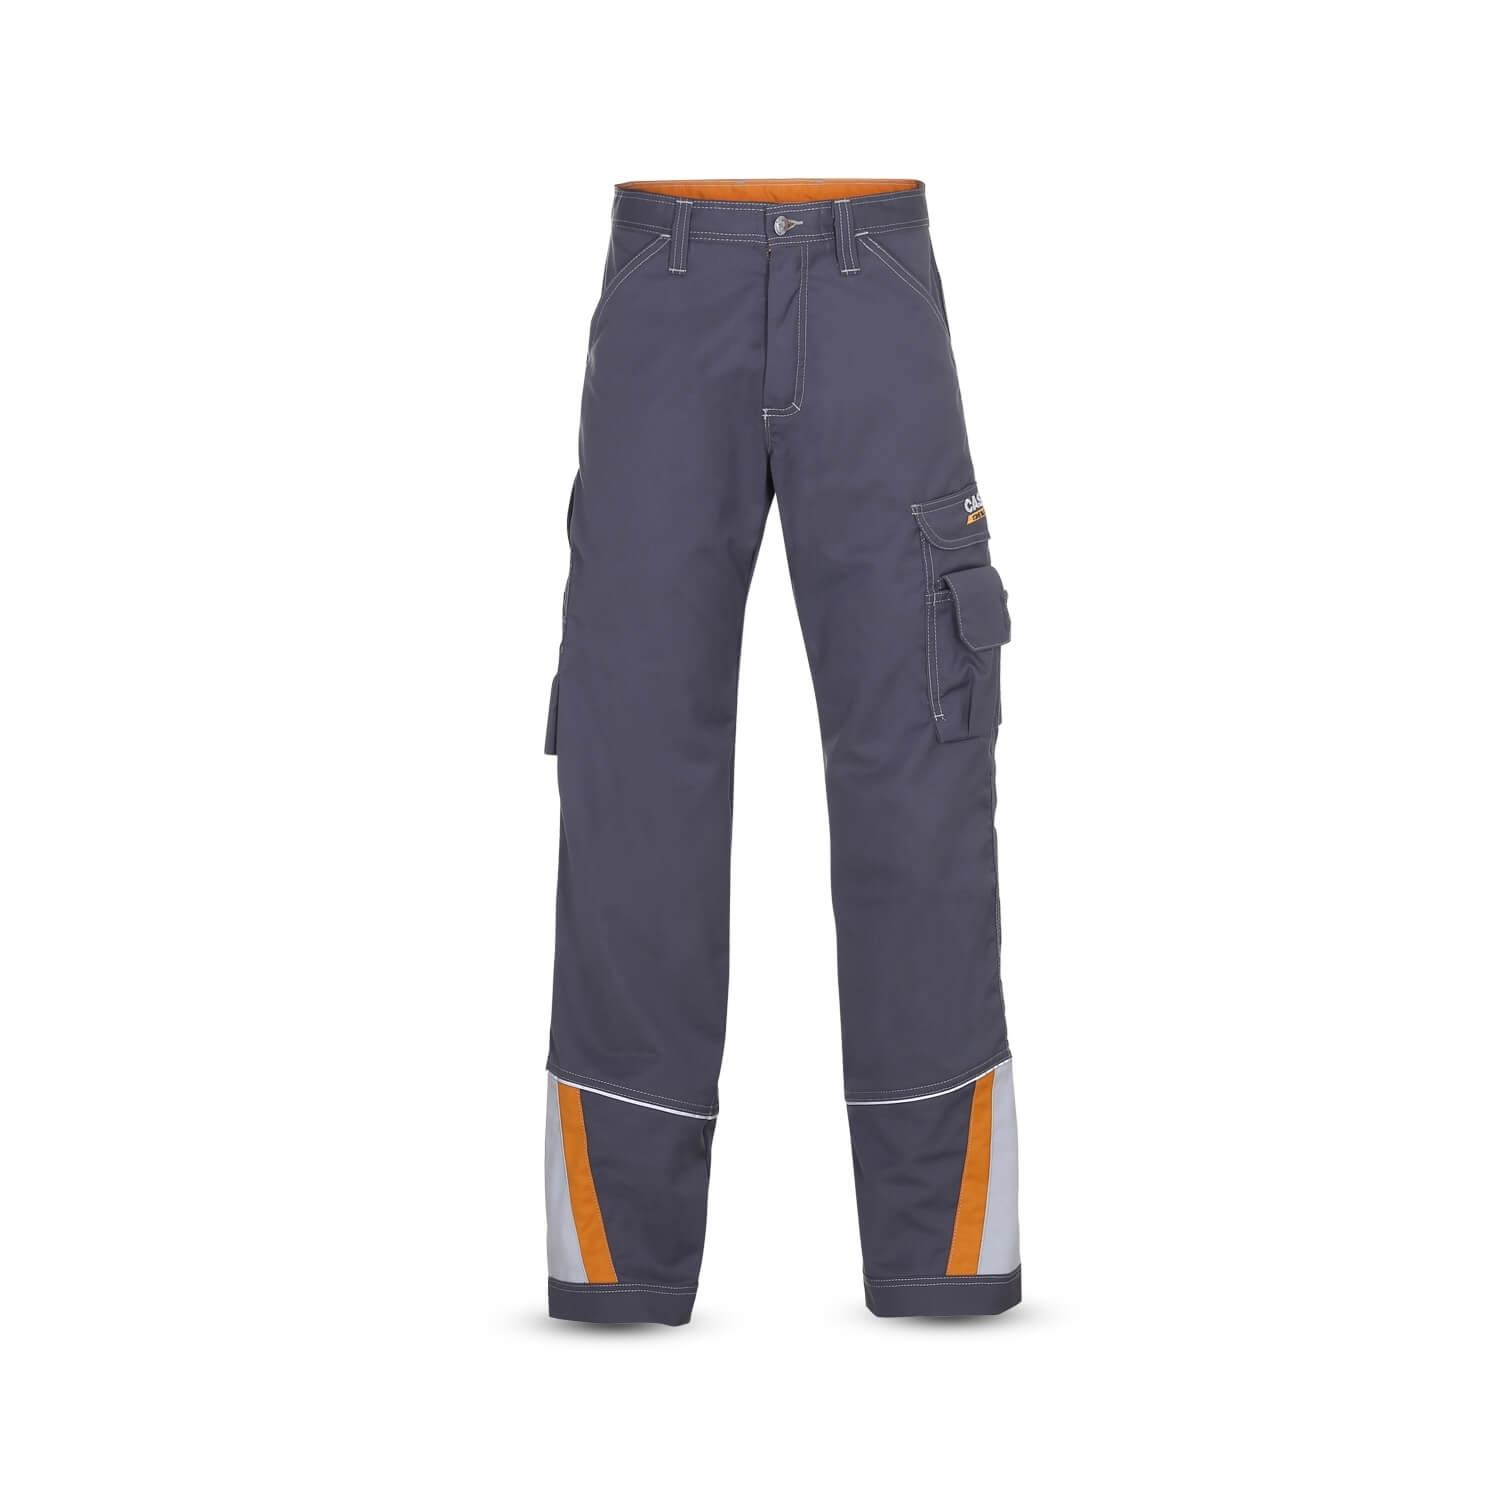 0000696 work trousers